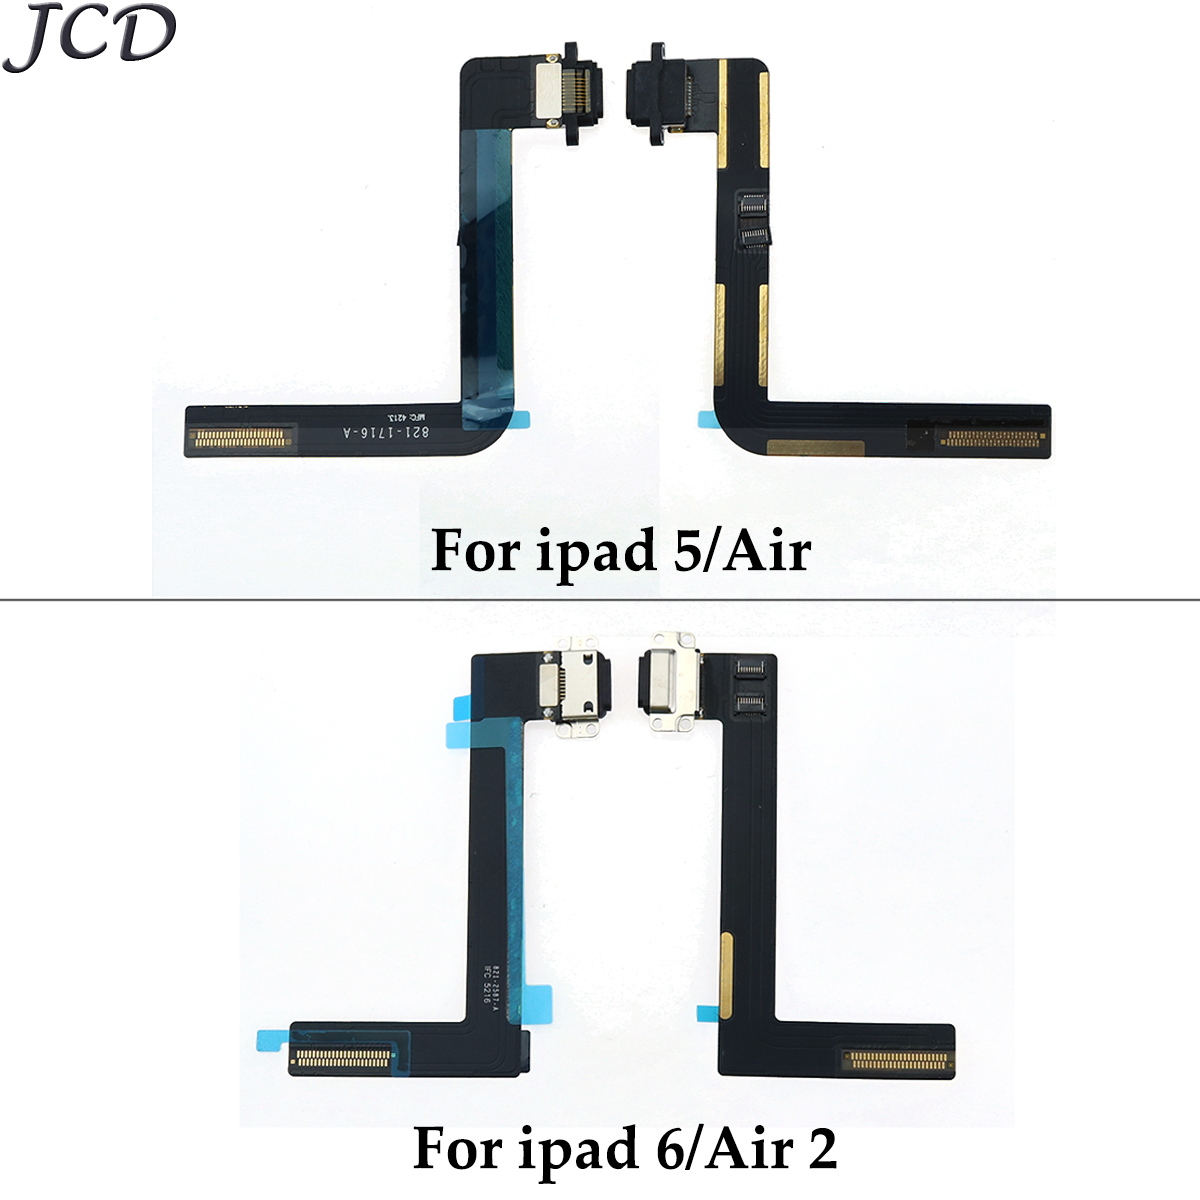 For iPad Air 2 Charge Port Connector Flex Cable For Repairing A+